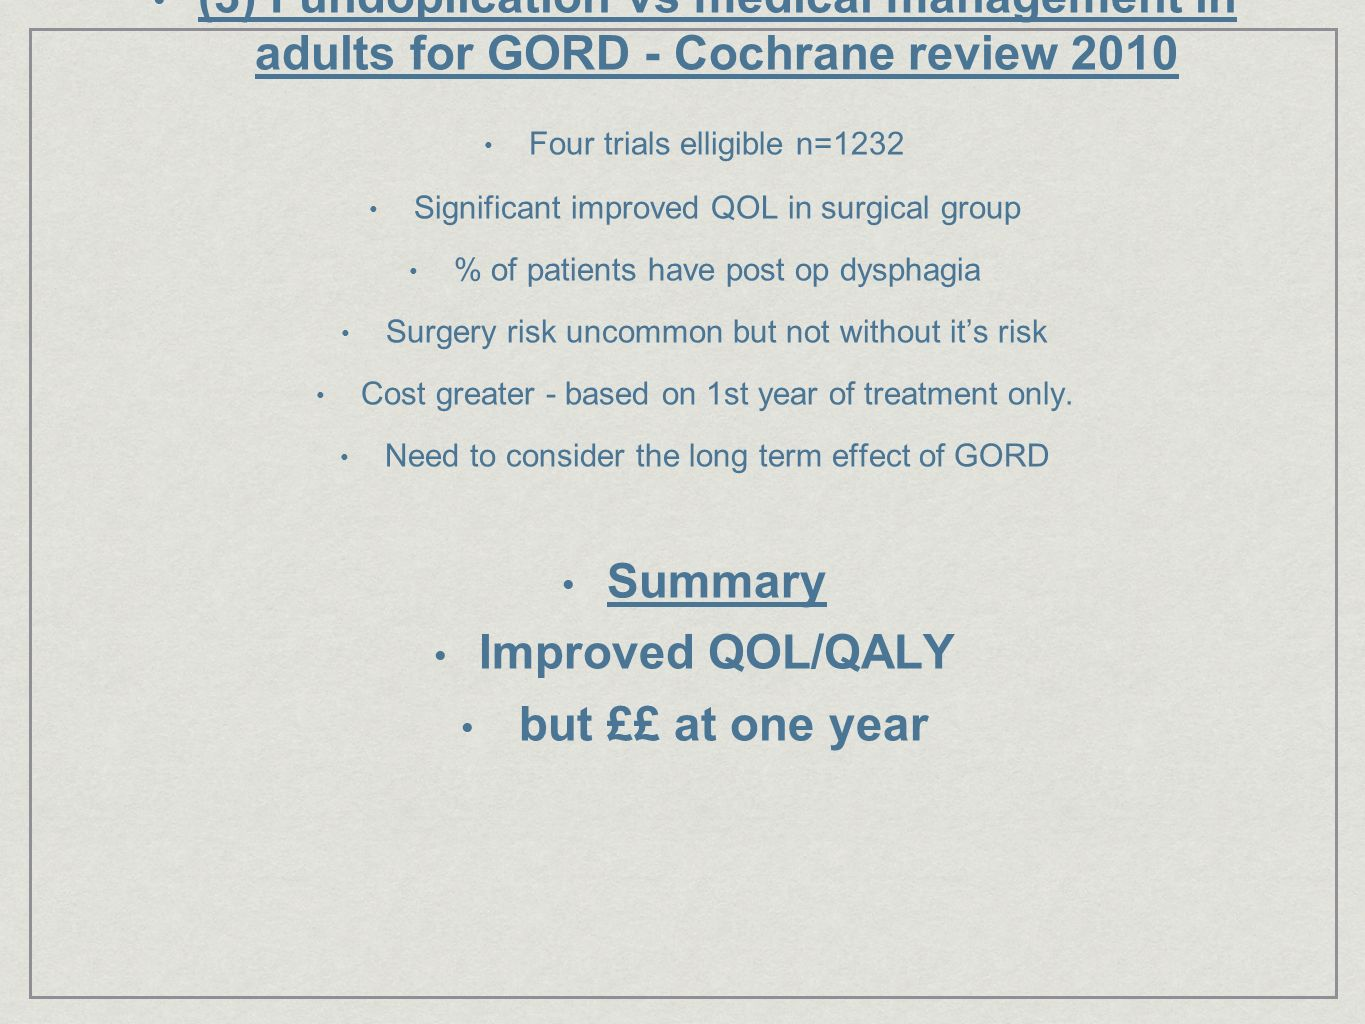 (3) Fundoplication vs medical management in adults for GORD - Cochrane review 2010